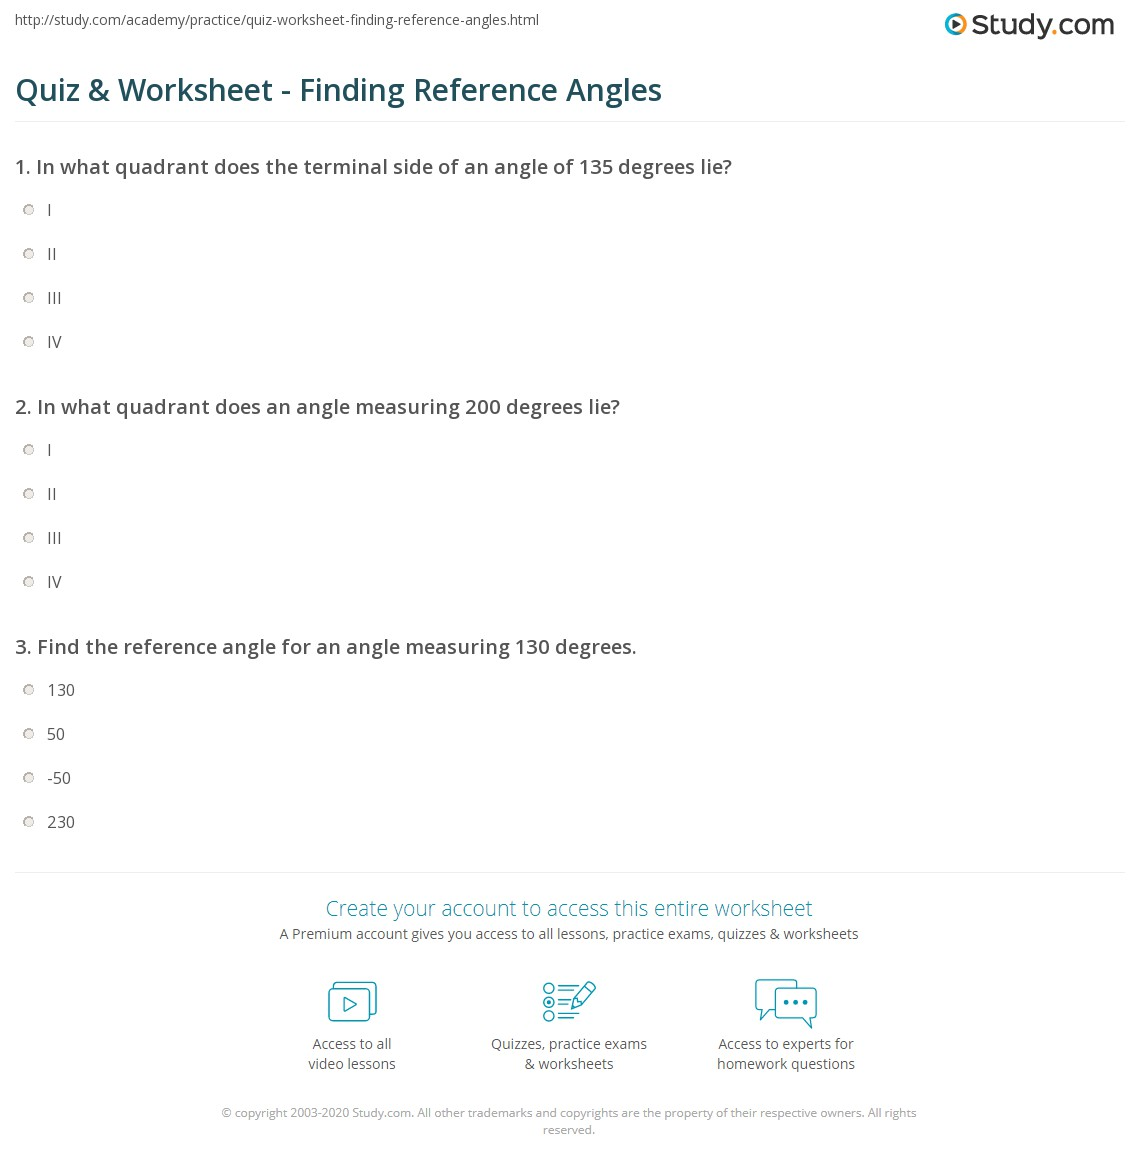 quiz worksheet finding reference angles. Black Bedroom Furniture Sets. Home Design Ideas